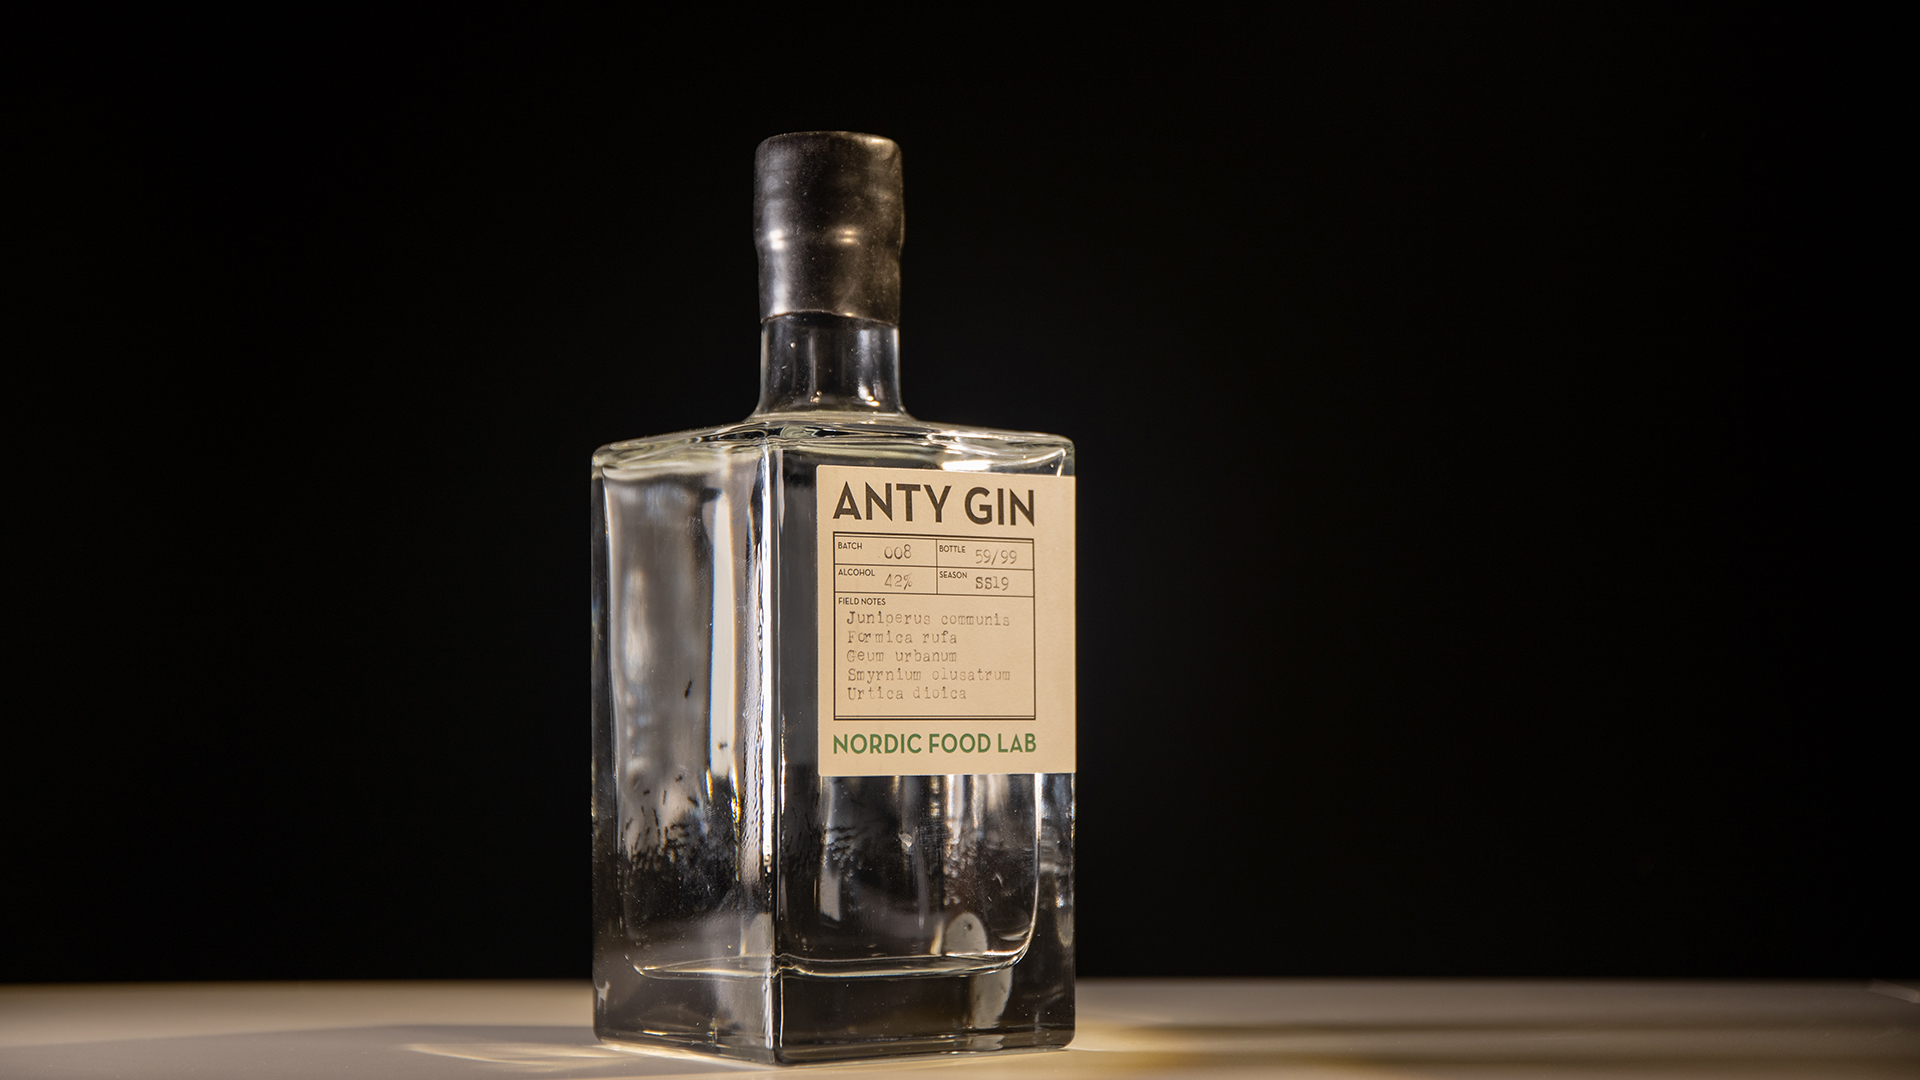 Anty Gin is flavored with juniper and nettle. And of course, ants.